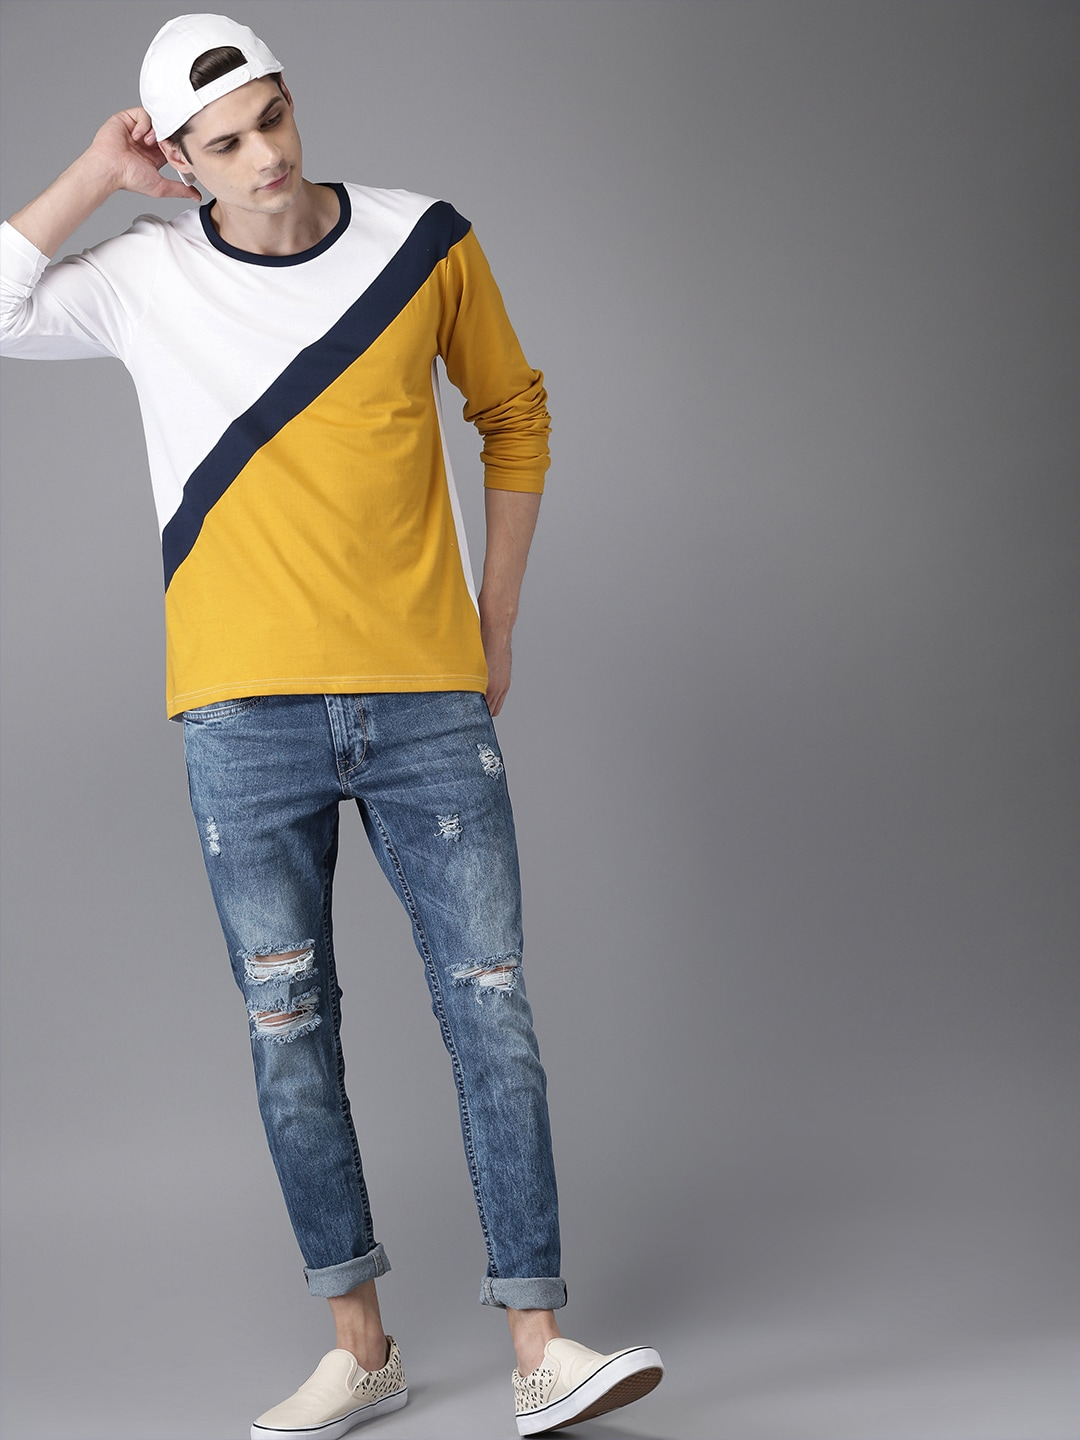 Buy HERE&NOW Blue Skinny Fit Mid-Rise Highly Distressed Stretchable Men's Jeans At Best Price